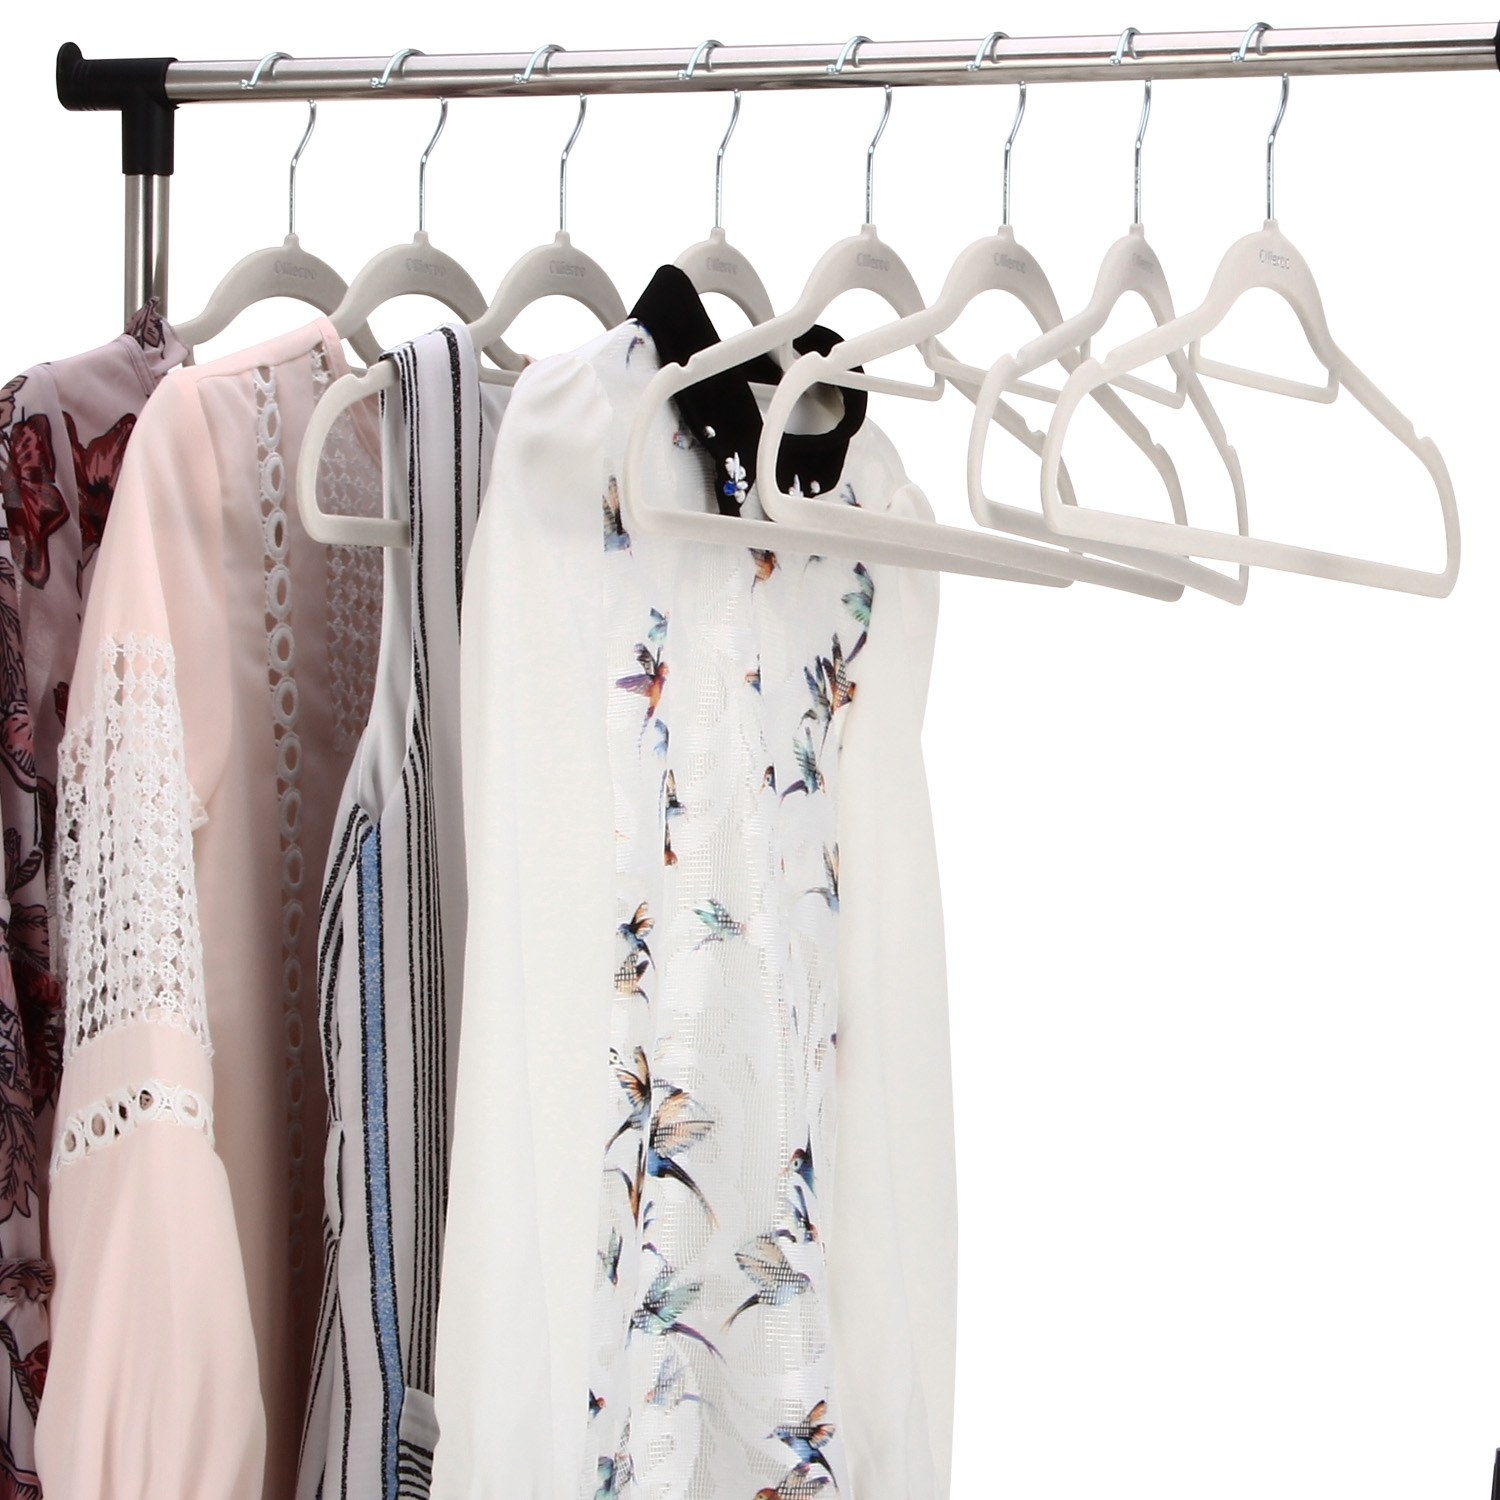 The velvet hangers holding clothes in a closet